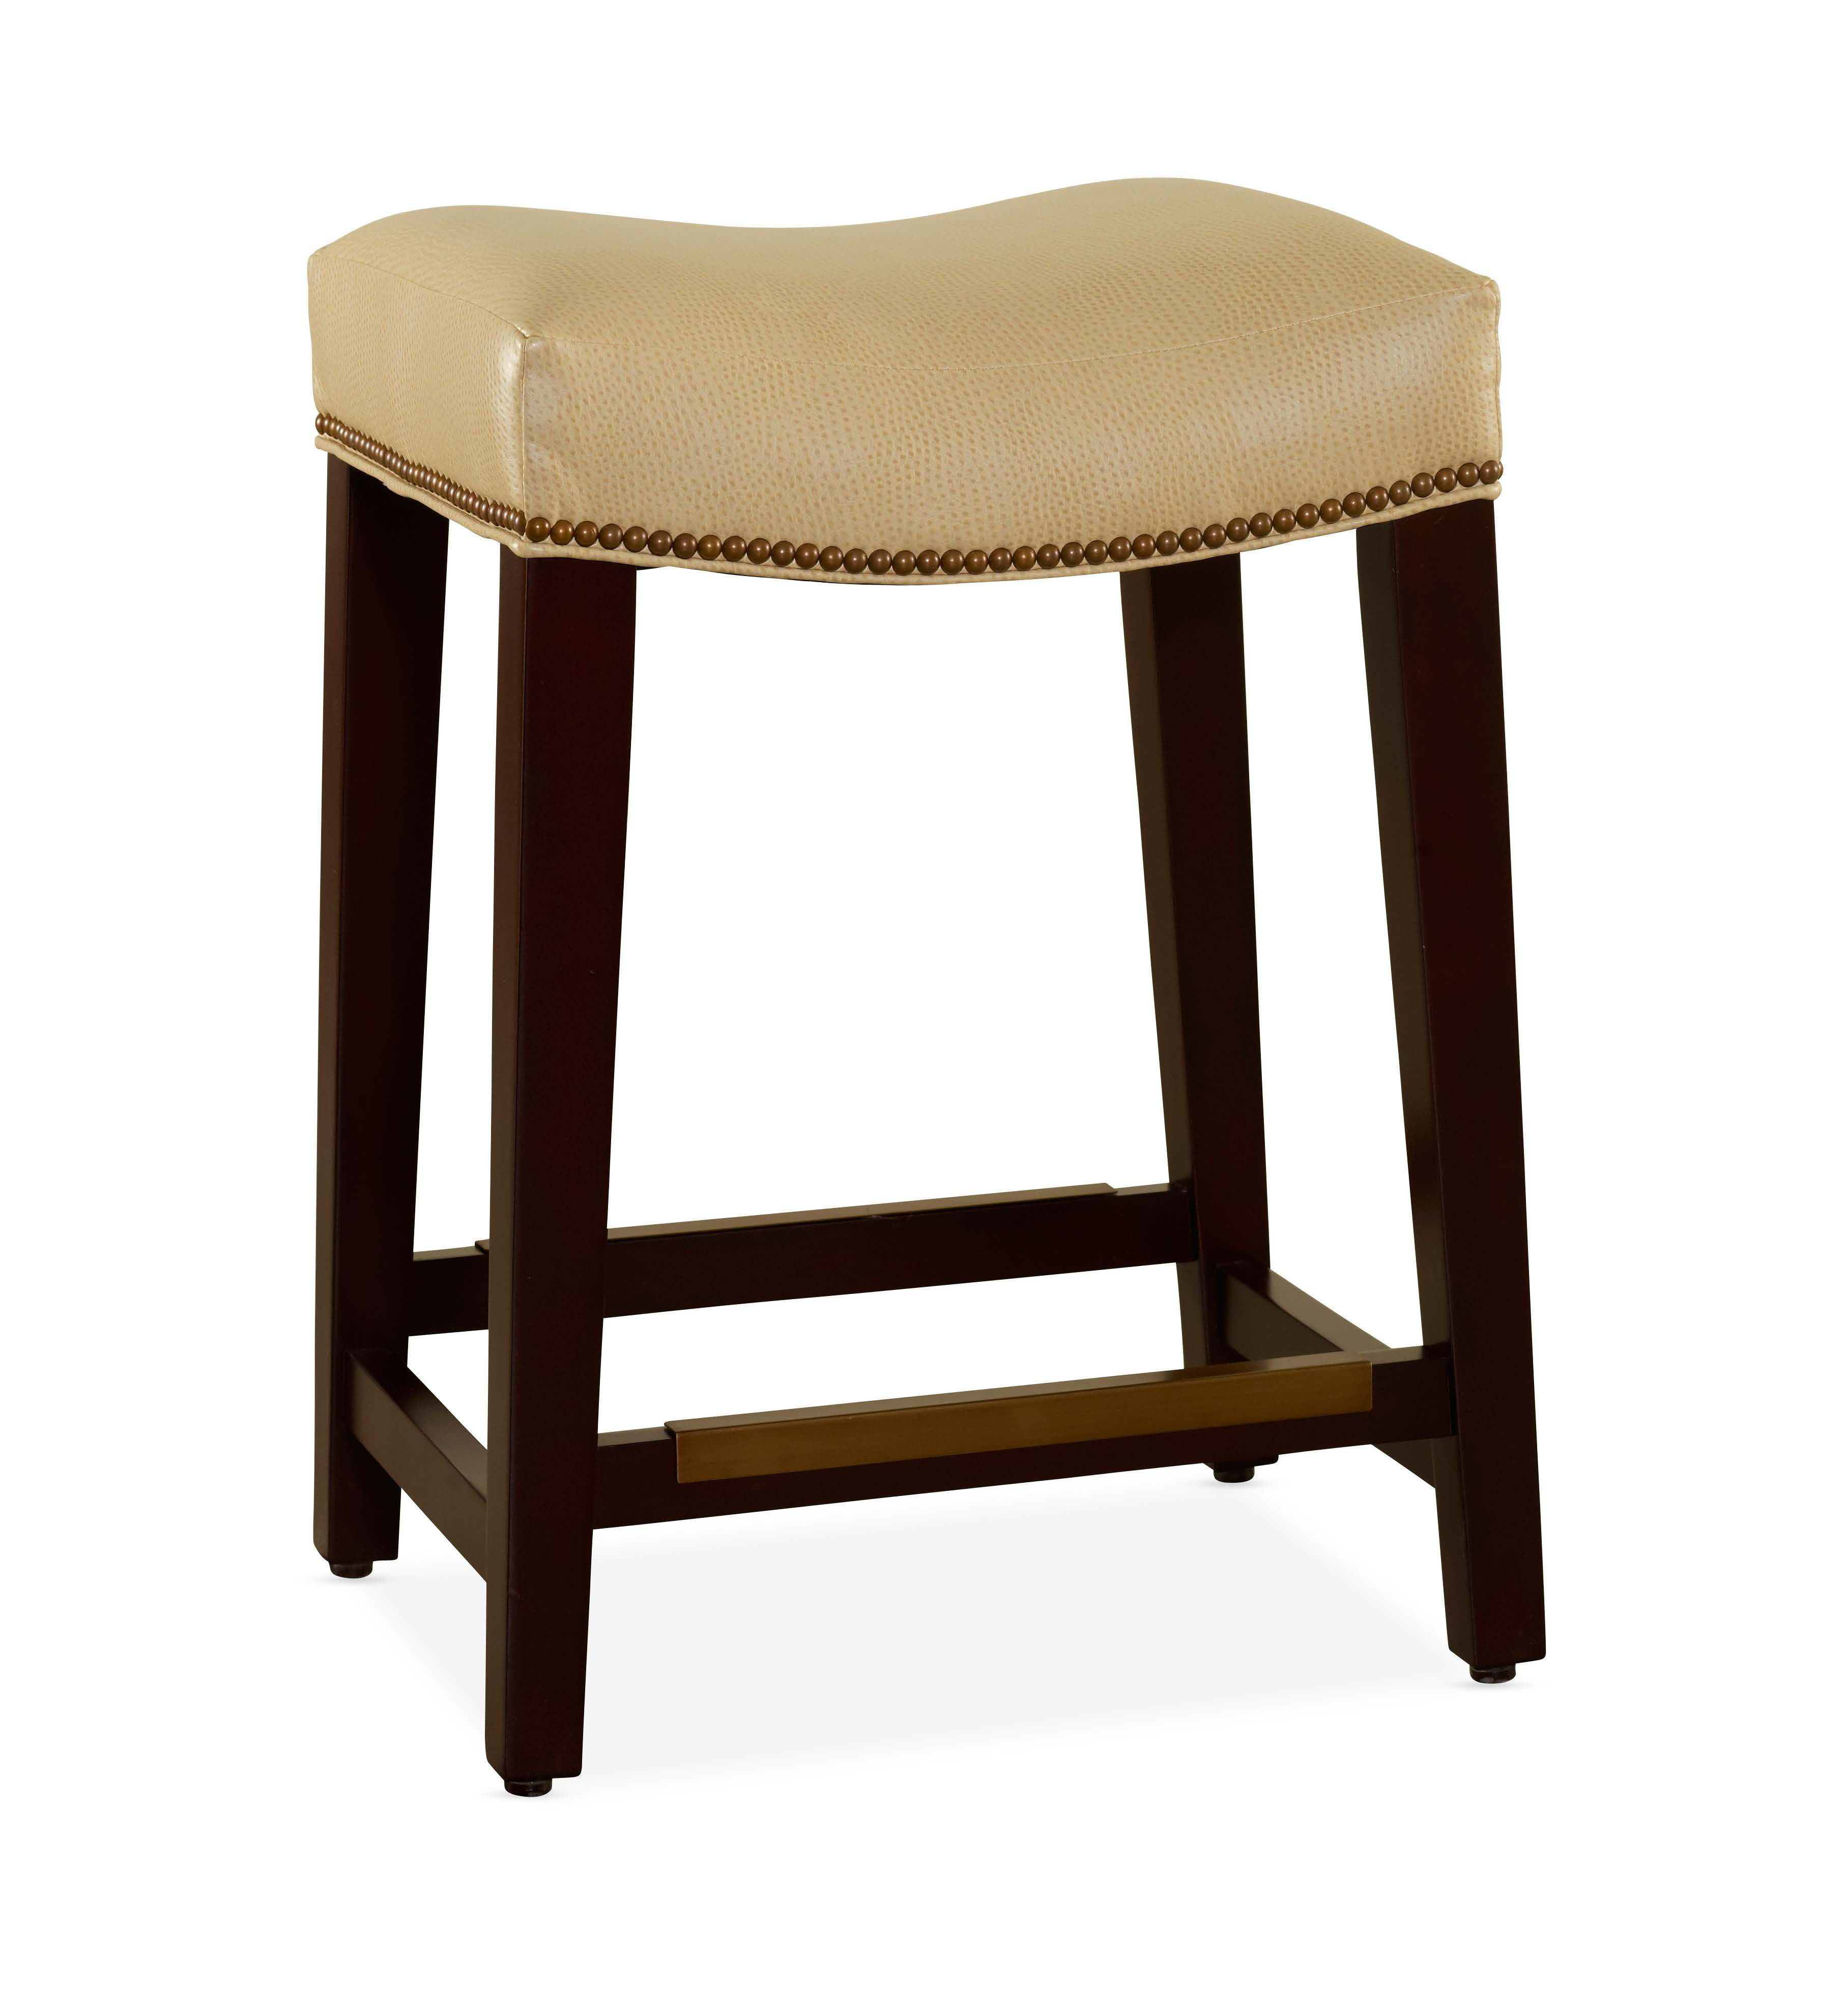 Kitchen Bar Stools For Small Spaces: Furniture Backless Counter Stools For Your Kitchen Design